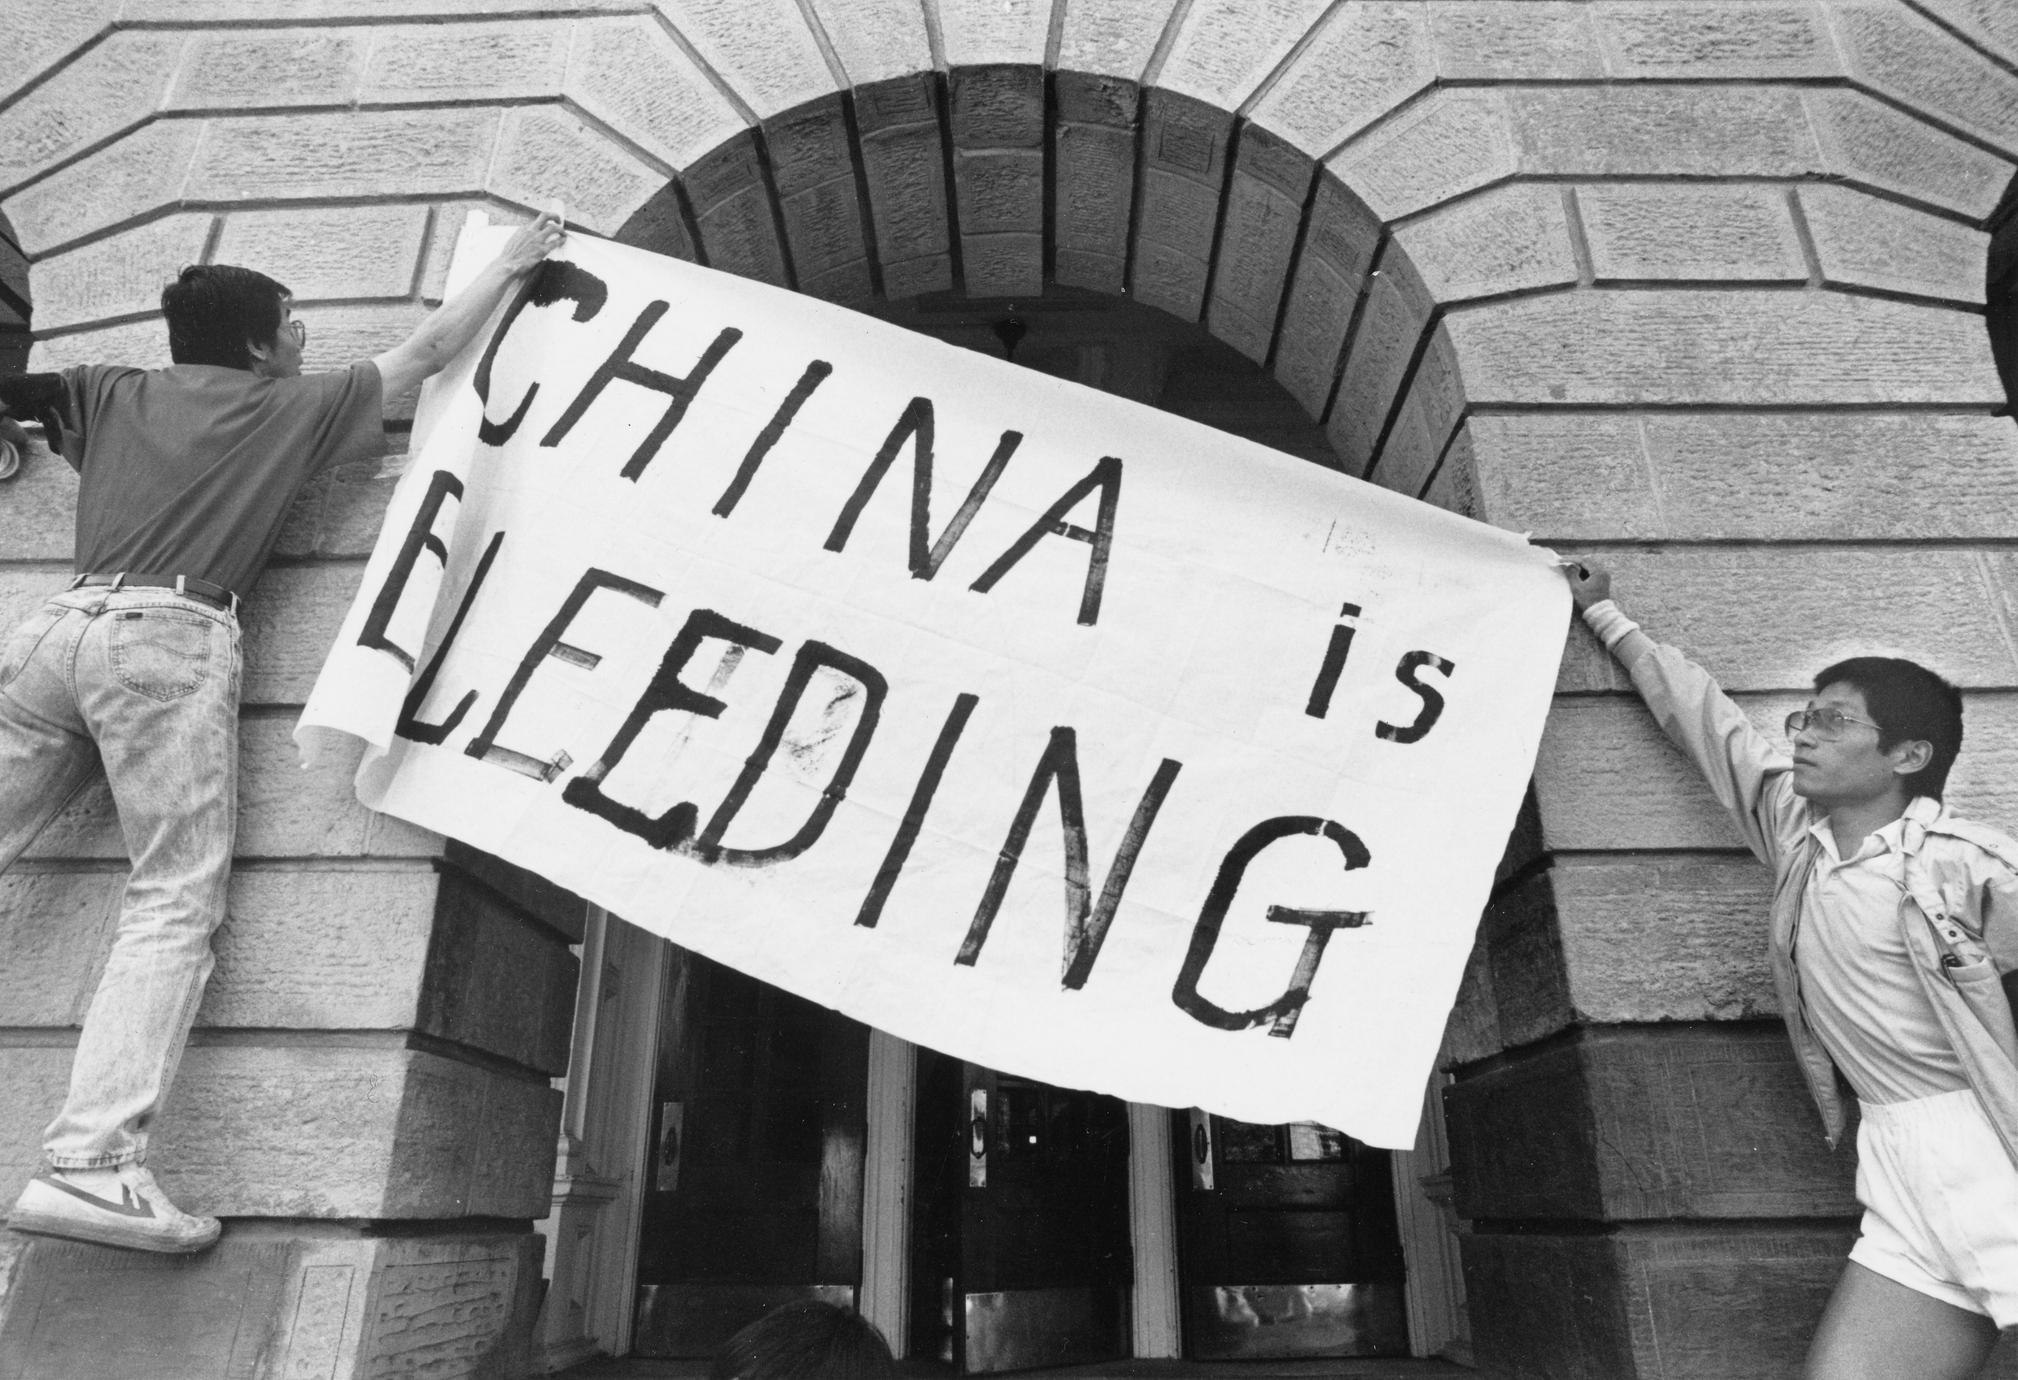 China is bleeding sign